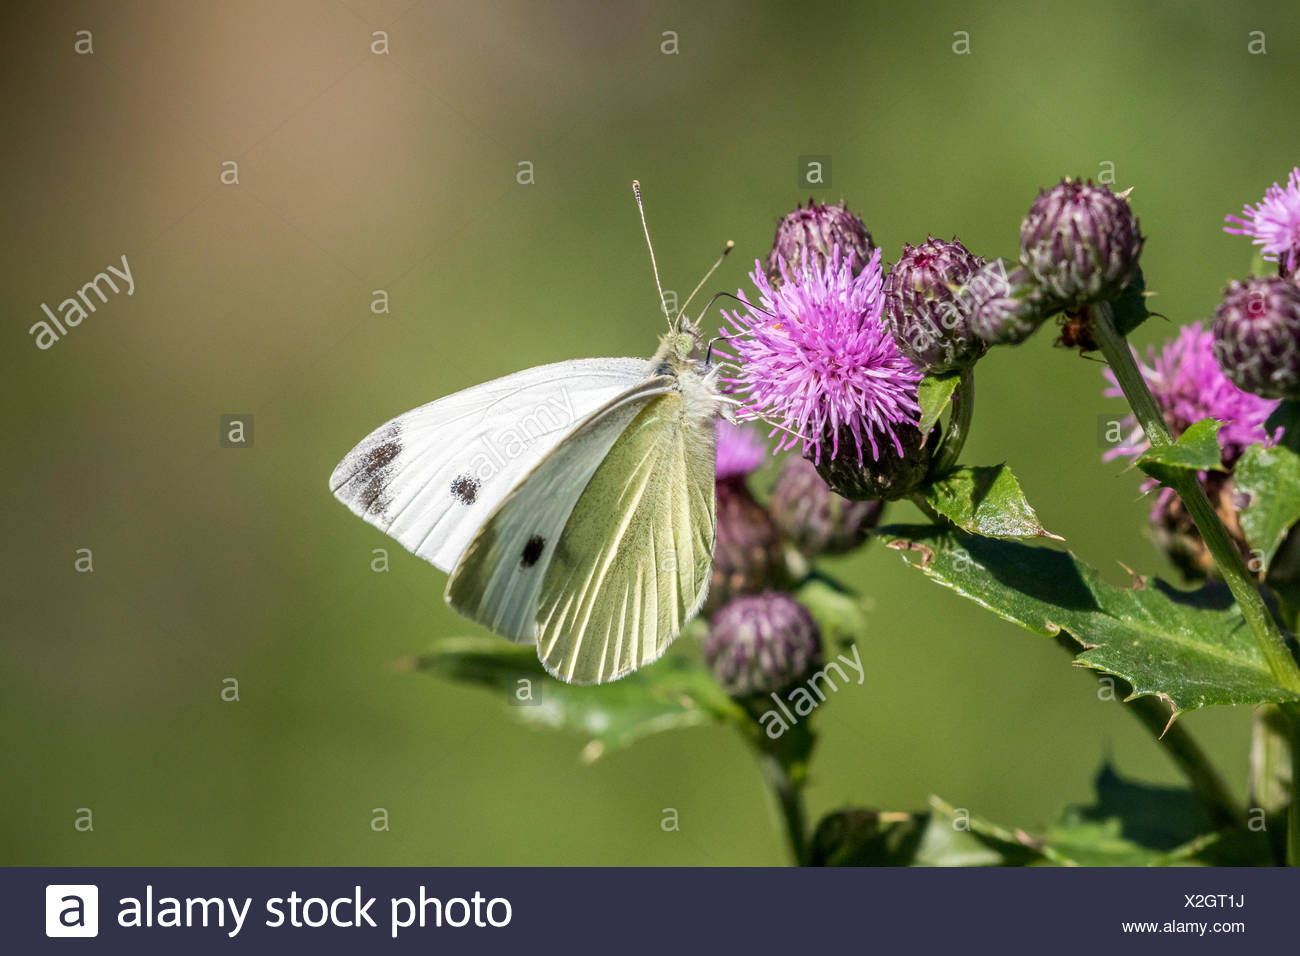 Cabbage White (Pieris rapae) male on Canada Thistle (Cirsium arvense), both the butterfly and thistle were introduced to Canada and are widespread - Stock Image